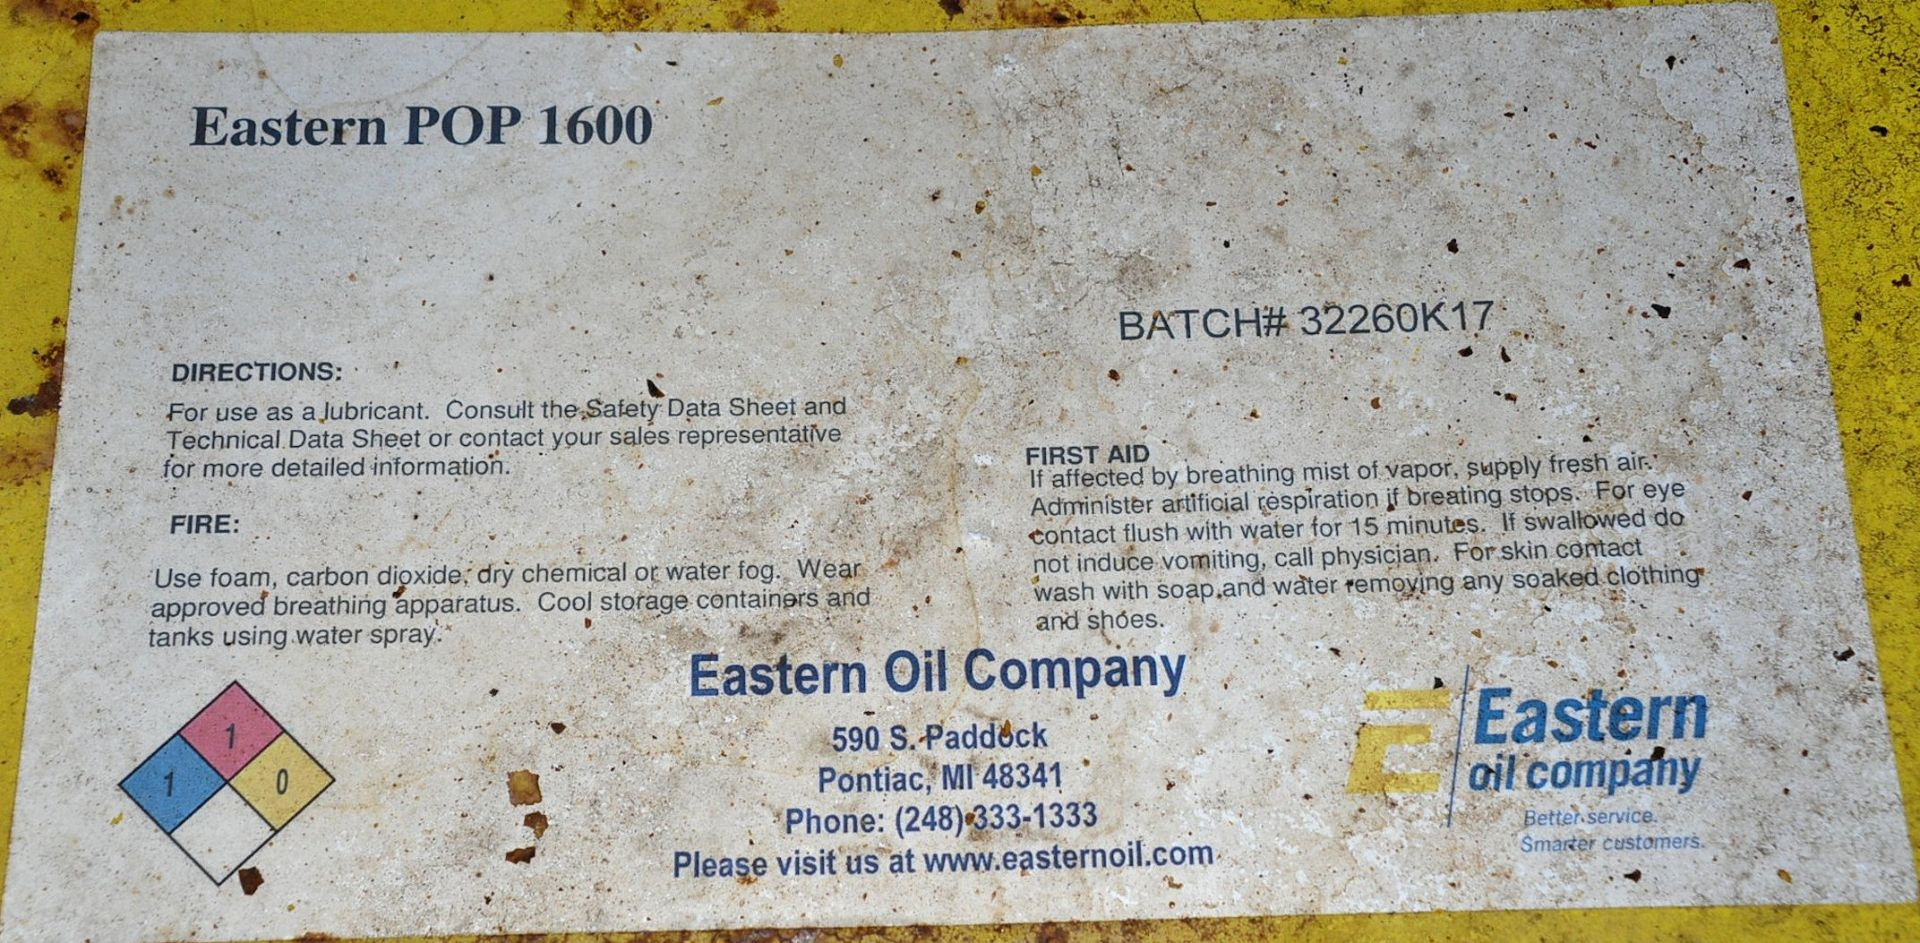 Lot-(2) 55-Gallon Drums of Eastern POP 1600 Paraffinic Process Oil, (Oils Storage Building), (Yellow - Image 2 of 2